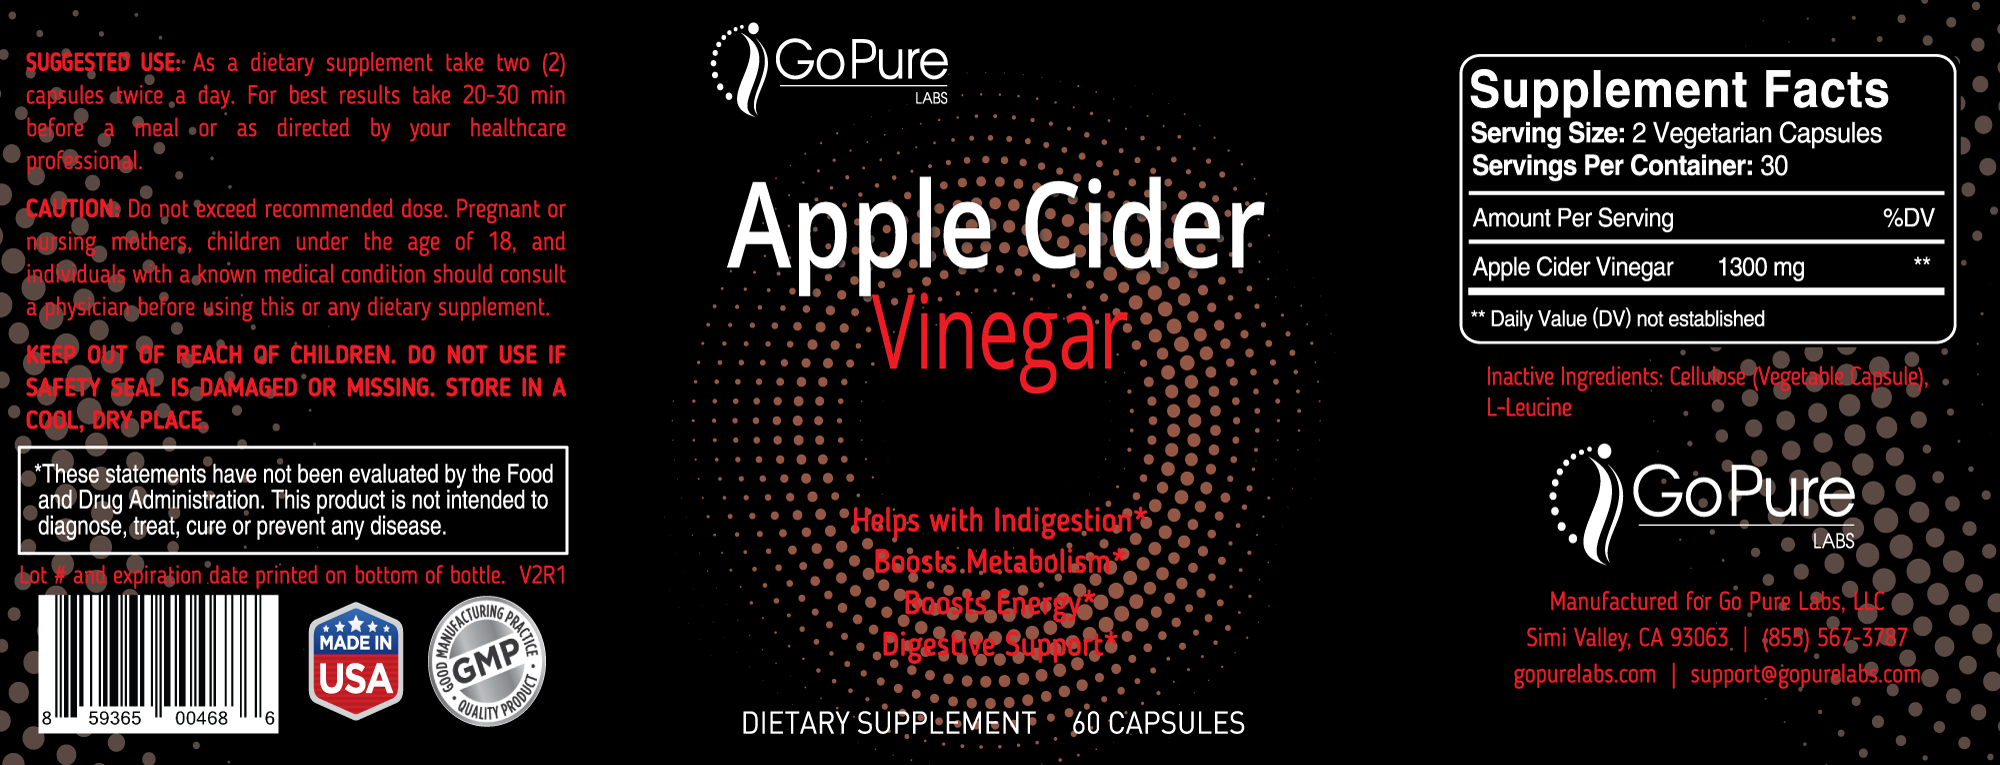 Go Pure Apple Cider Vinegar Label